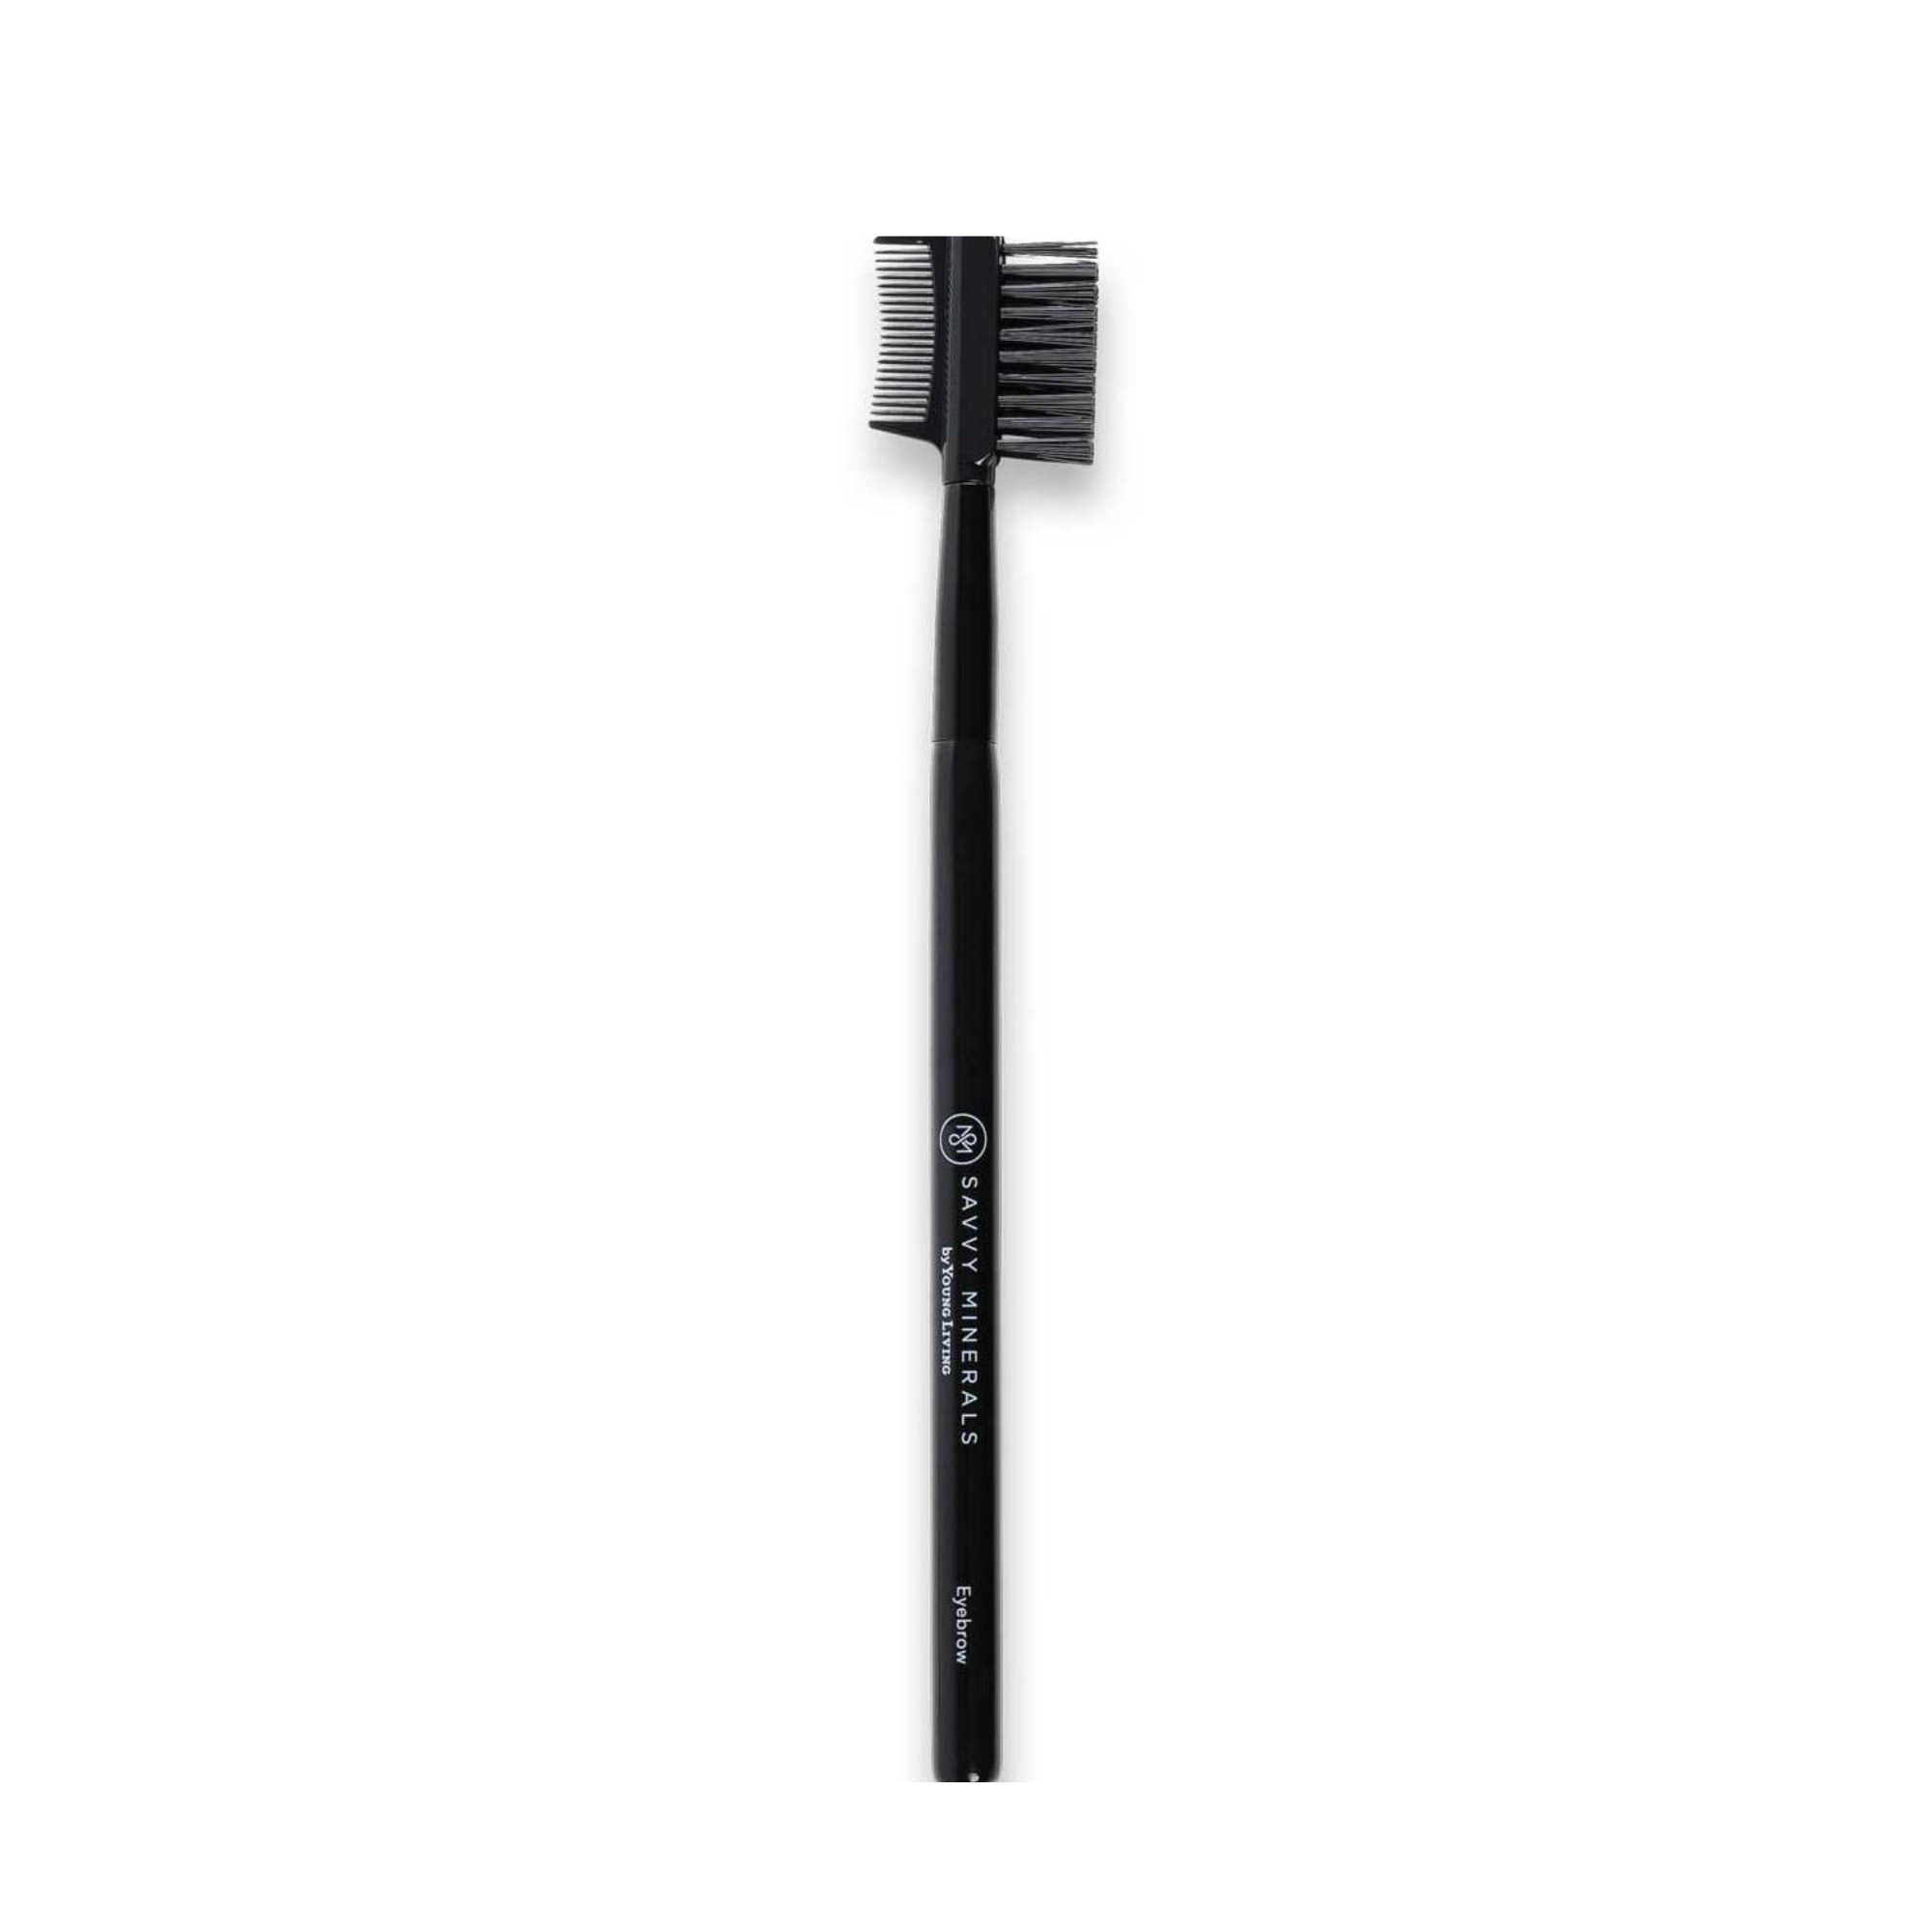 EYEBROW BRUSH    The eyebrow brush is great to keep unruly eyebrows at bay and to help separate eyelashes. Each soft makeup application brush is made from high-quality Italian synthetic fibers that are designed to hold the optimal amount of product and provide easy makeup application and a luxurious feel. Each brush is designed to work well with the texture of Savvy Minerals by Young Living powders.   Click here   to learn more about this product.